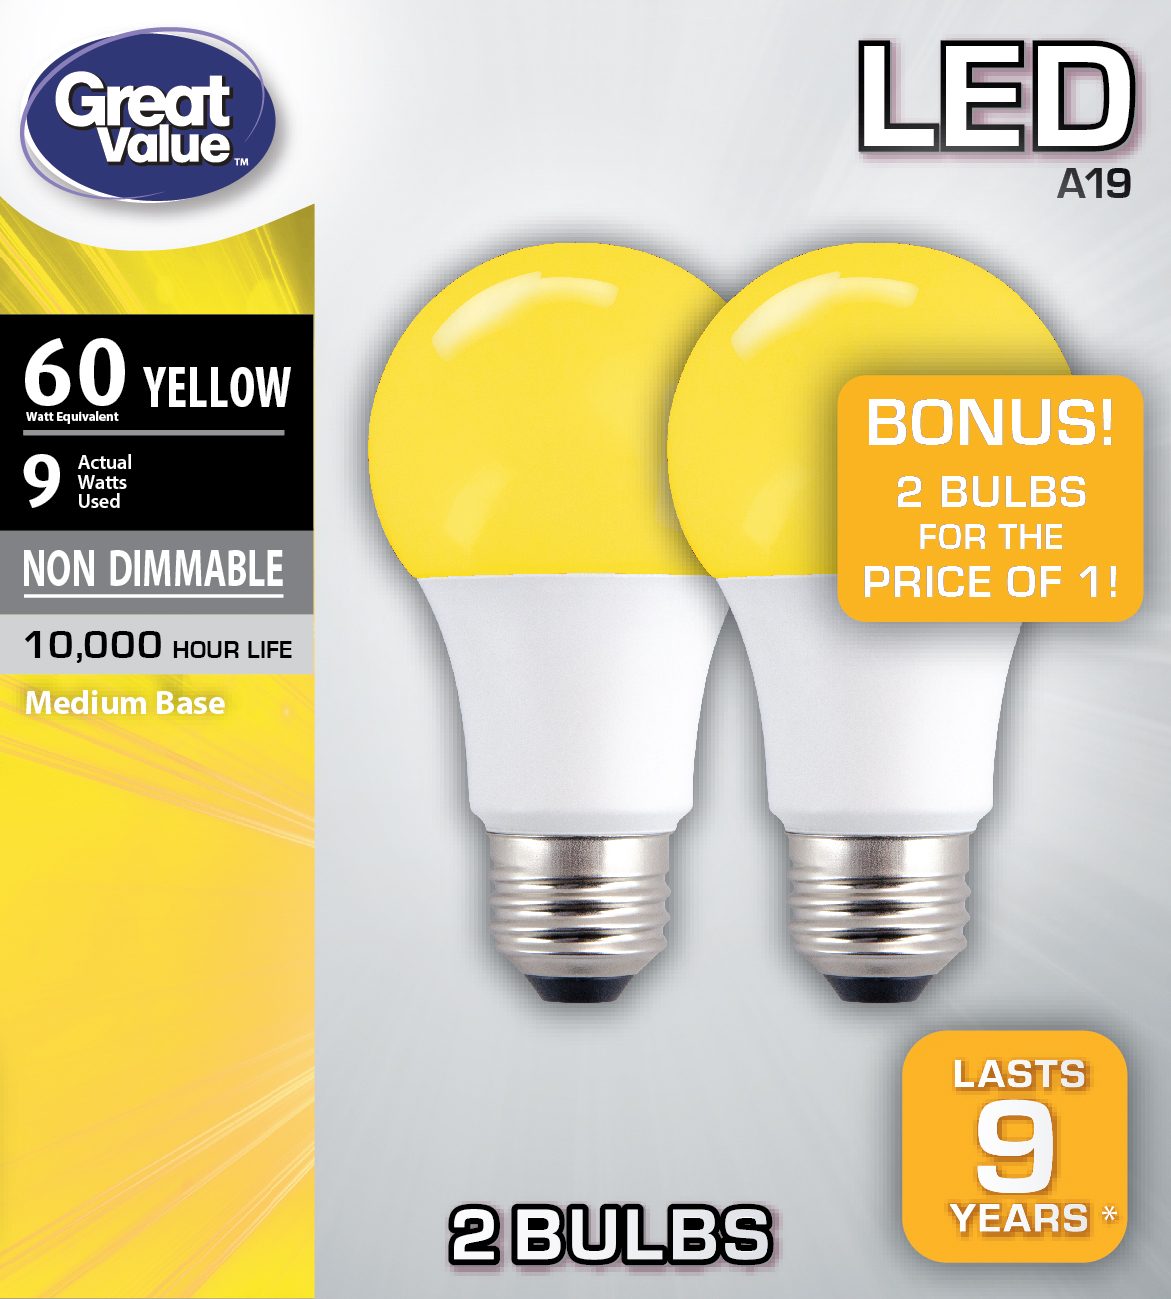 Great Value LED A19 (E26) Light Bulbs, 9W (60W Equivalent), Yellow, 2-Pack